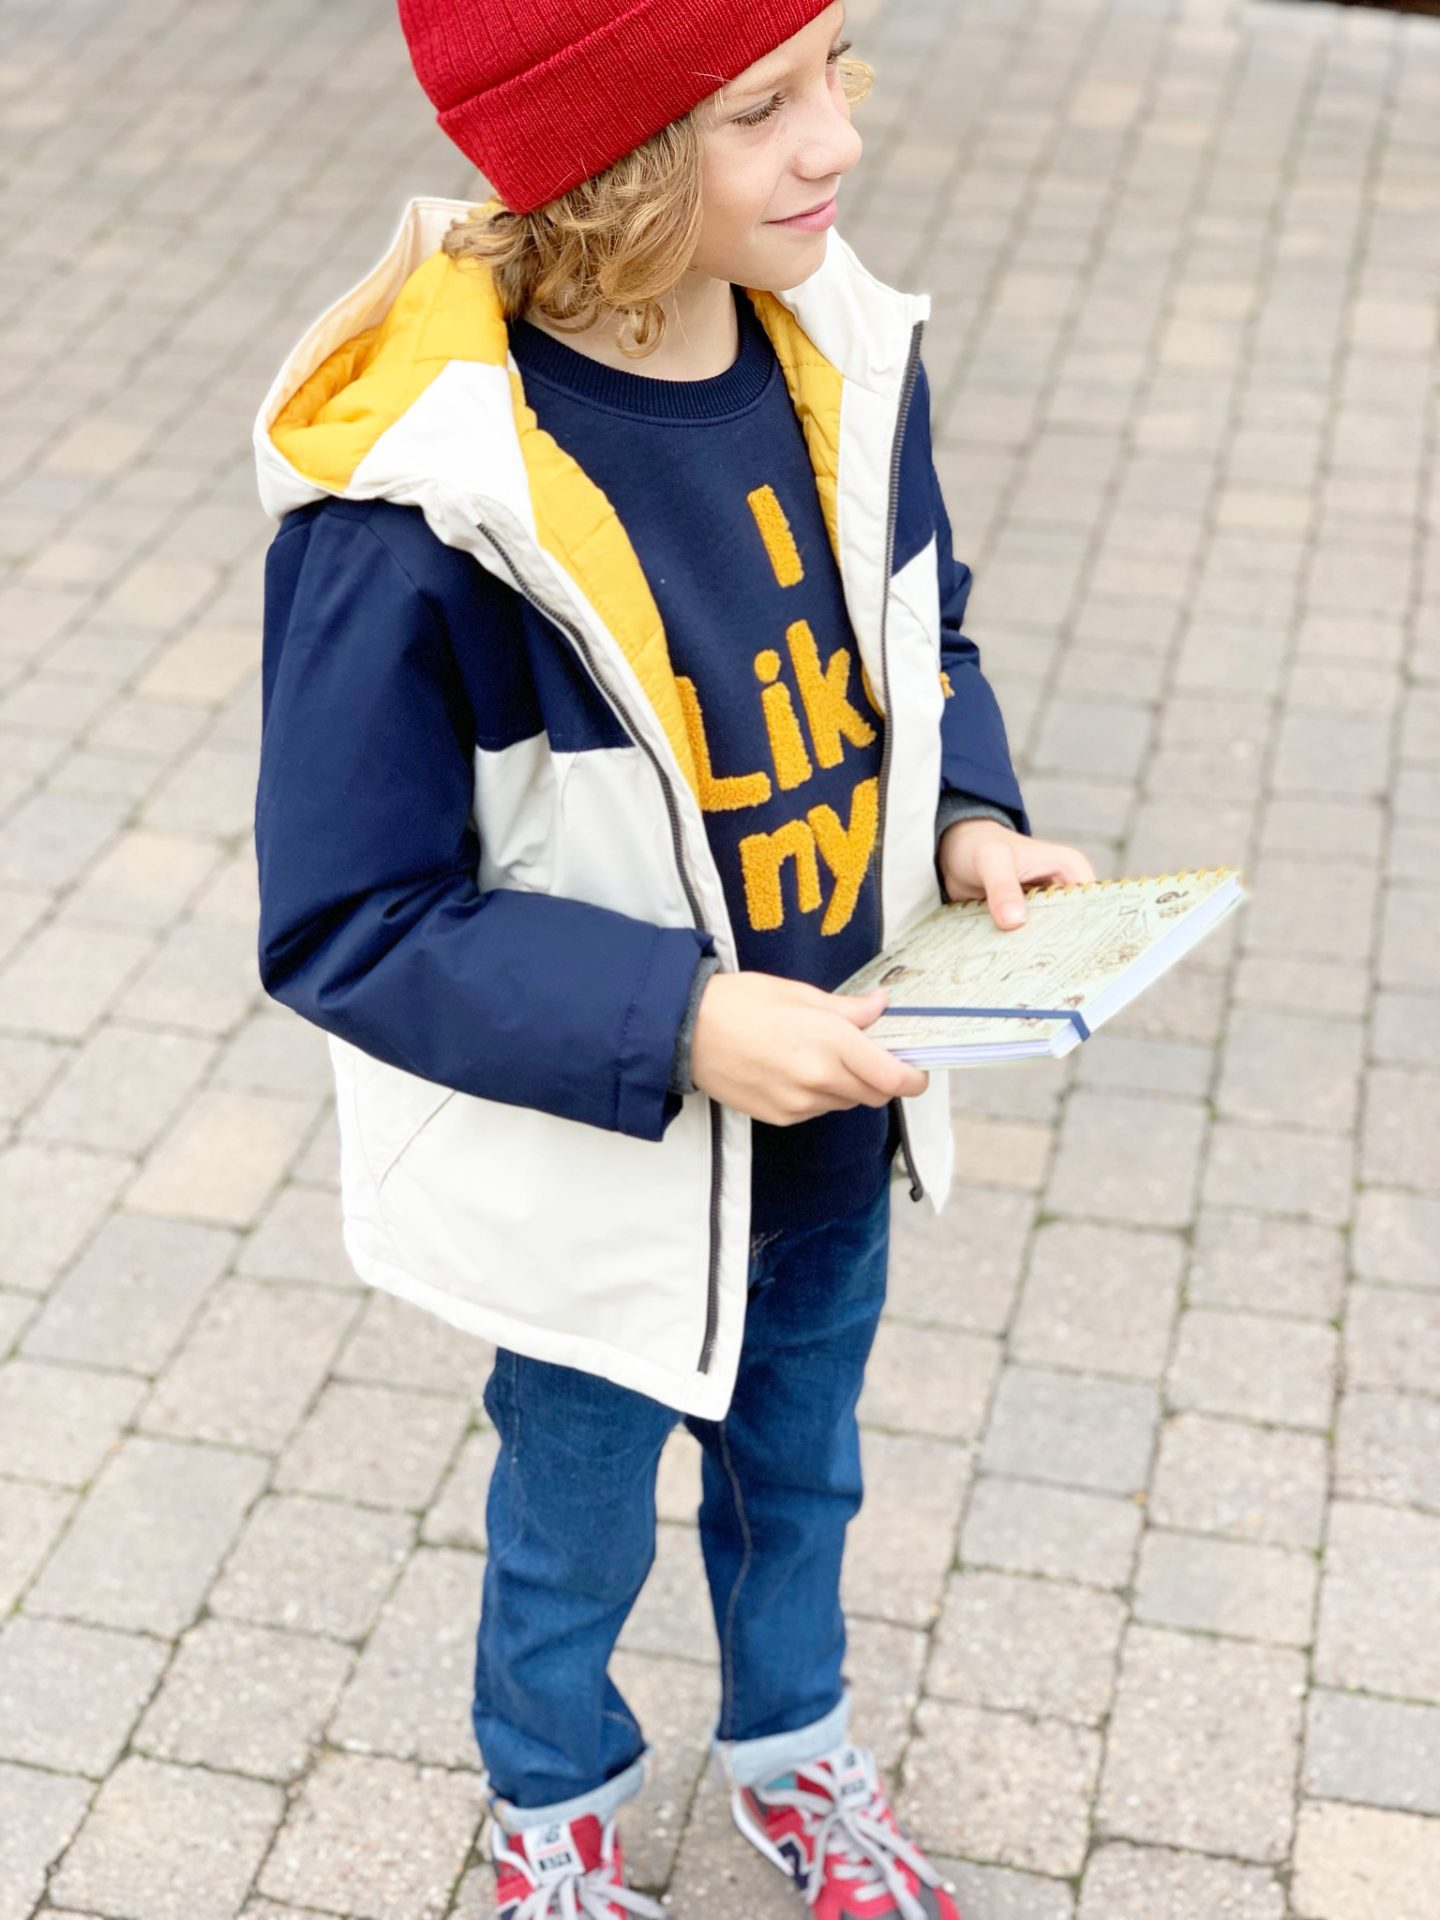 5 style staples every kid's wardrobe needs for winter